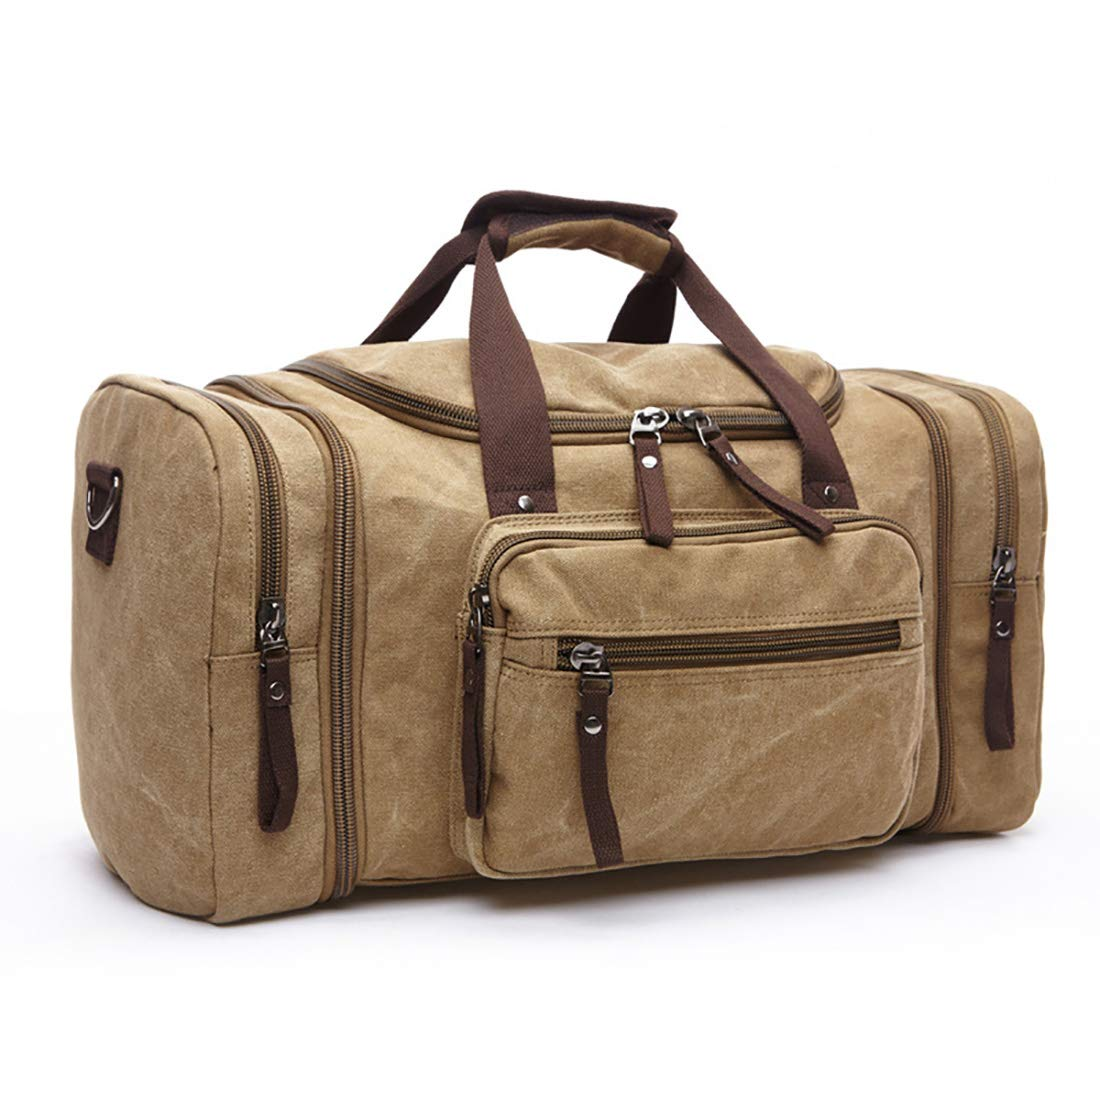 Toupons Travel Duffel Bag for Men /& Women Overnight Weekend Bag